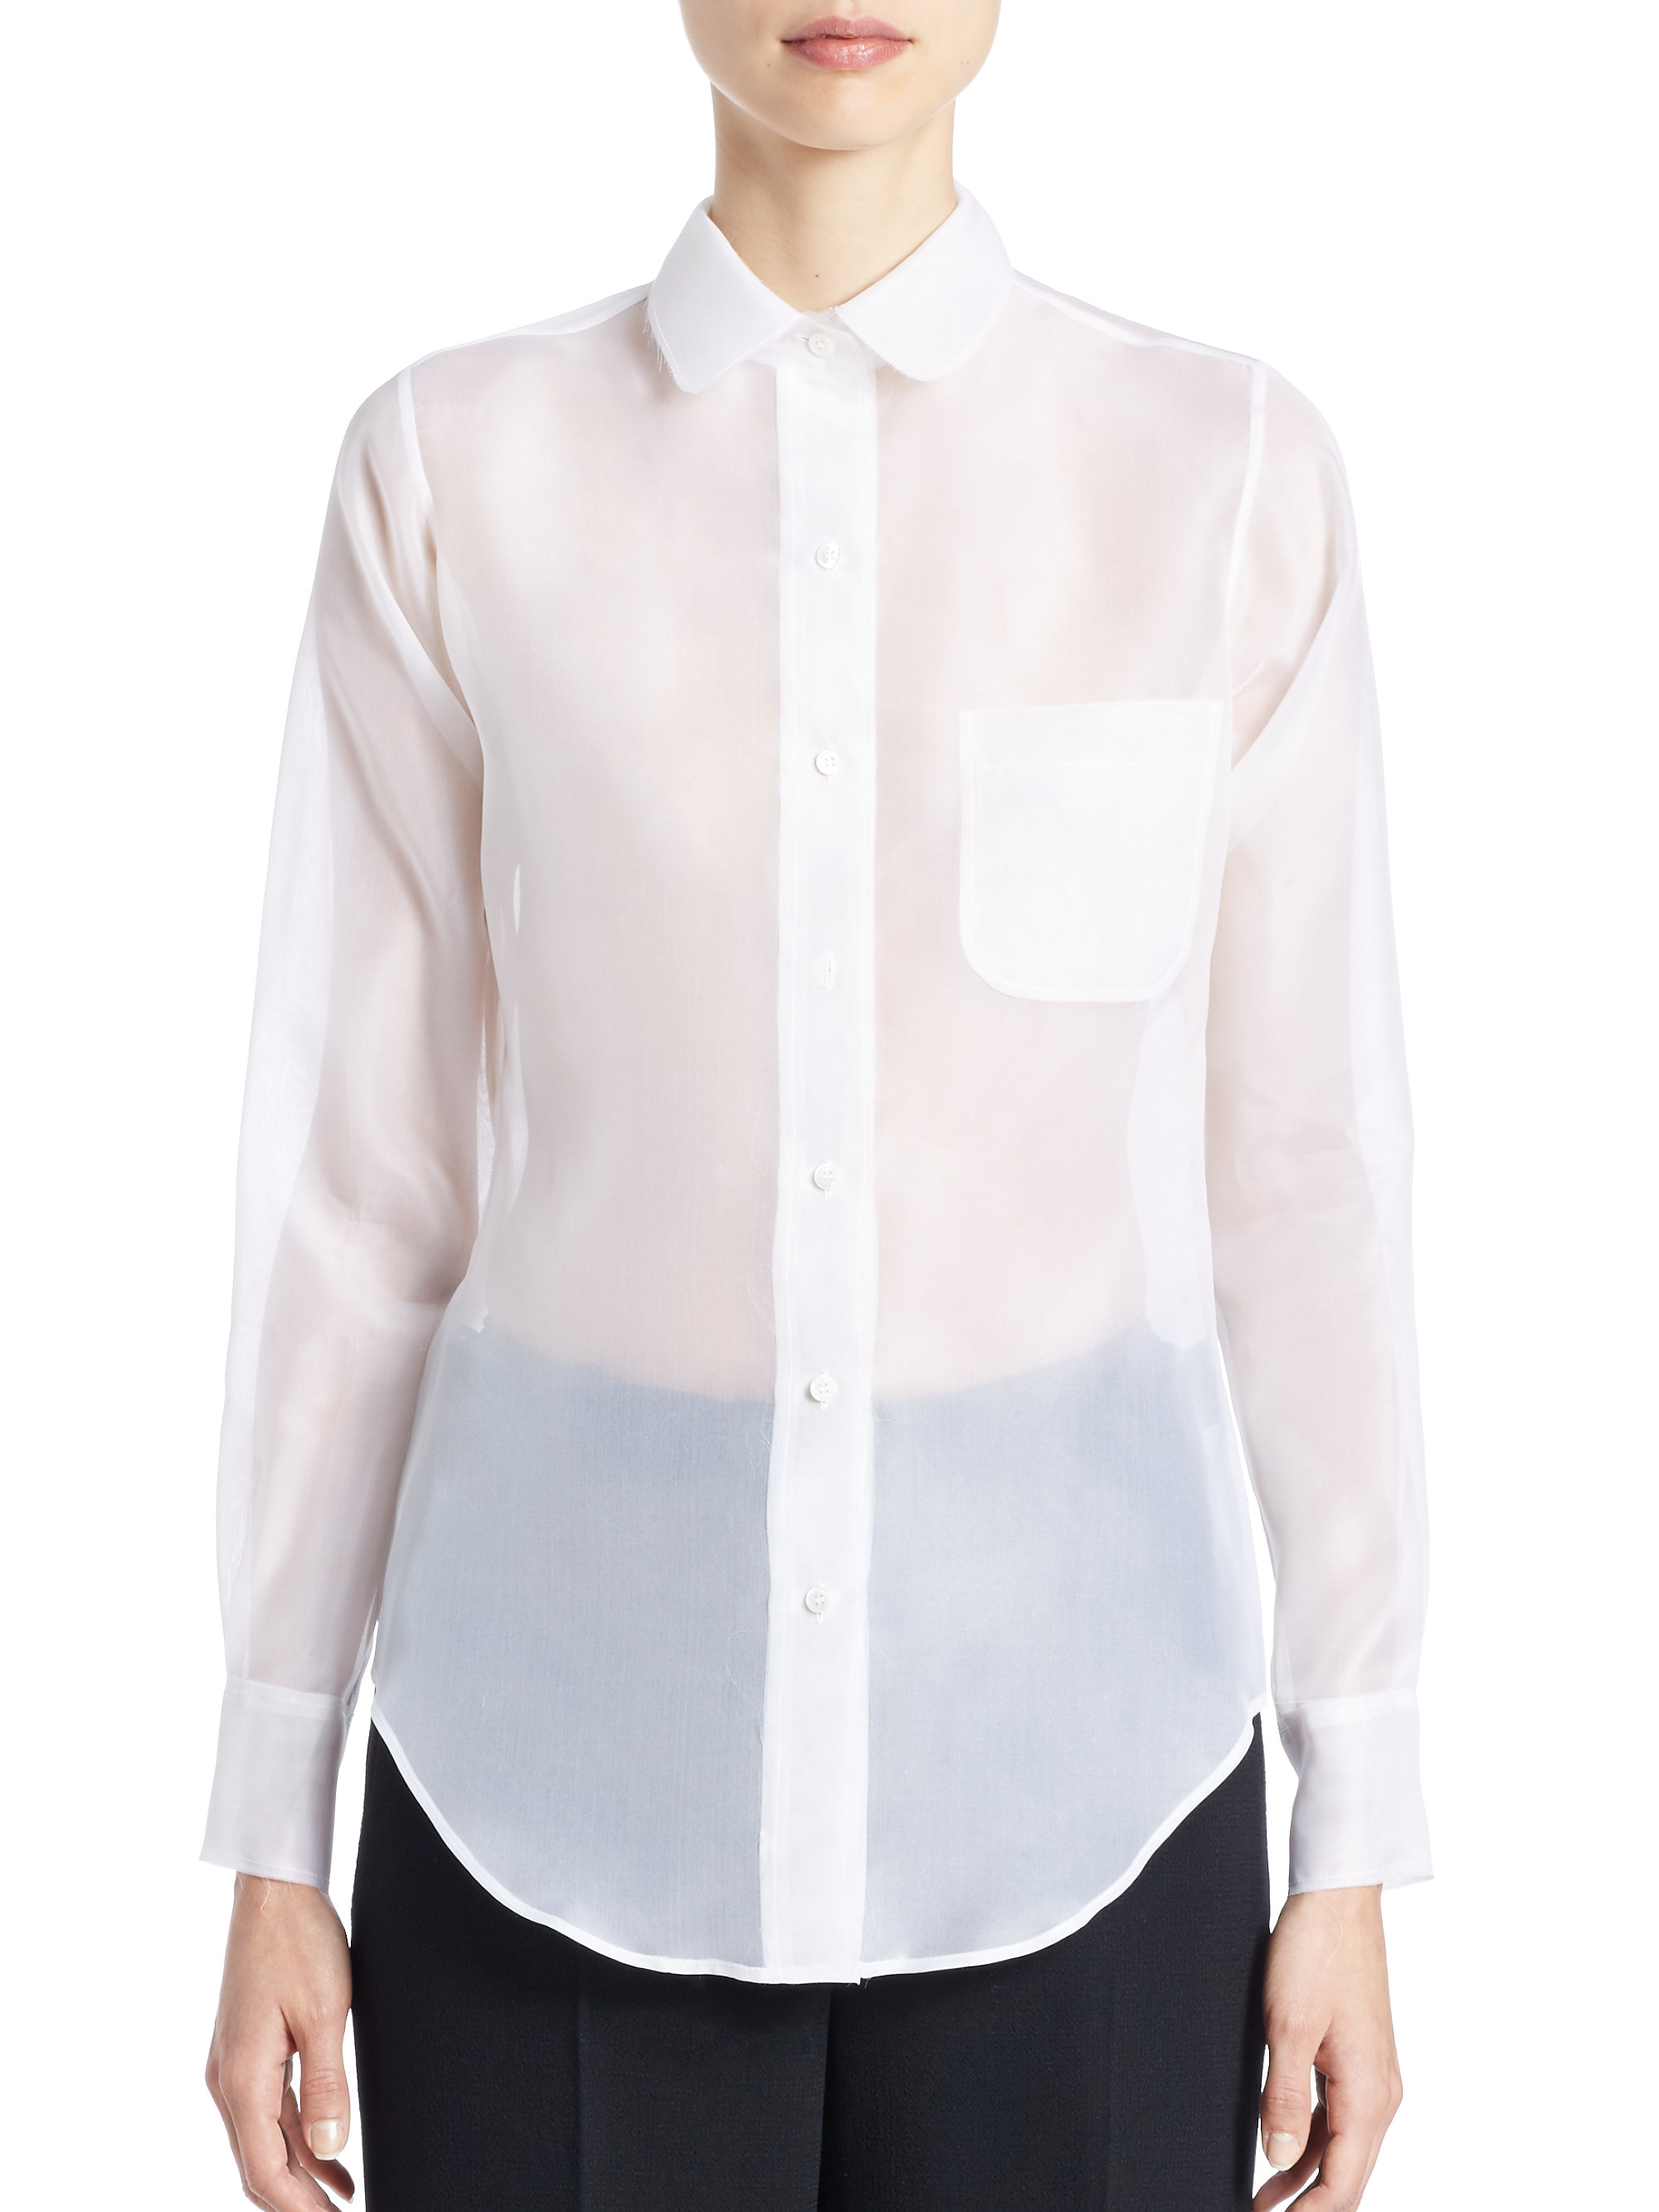 5b9644a51644 Gallery. Previously sold at  Saks Fifth Avenue · Women s Ruffle Shirts  Women s White ...